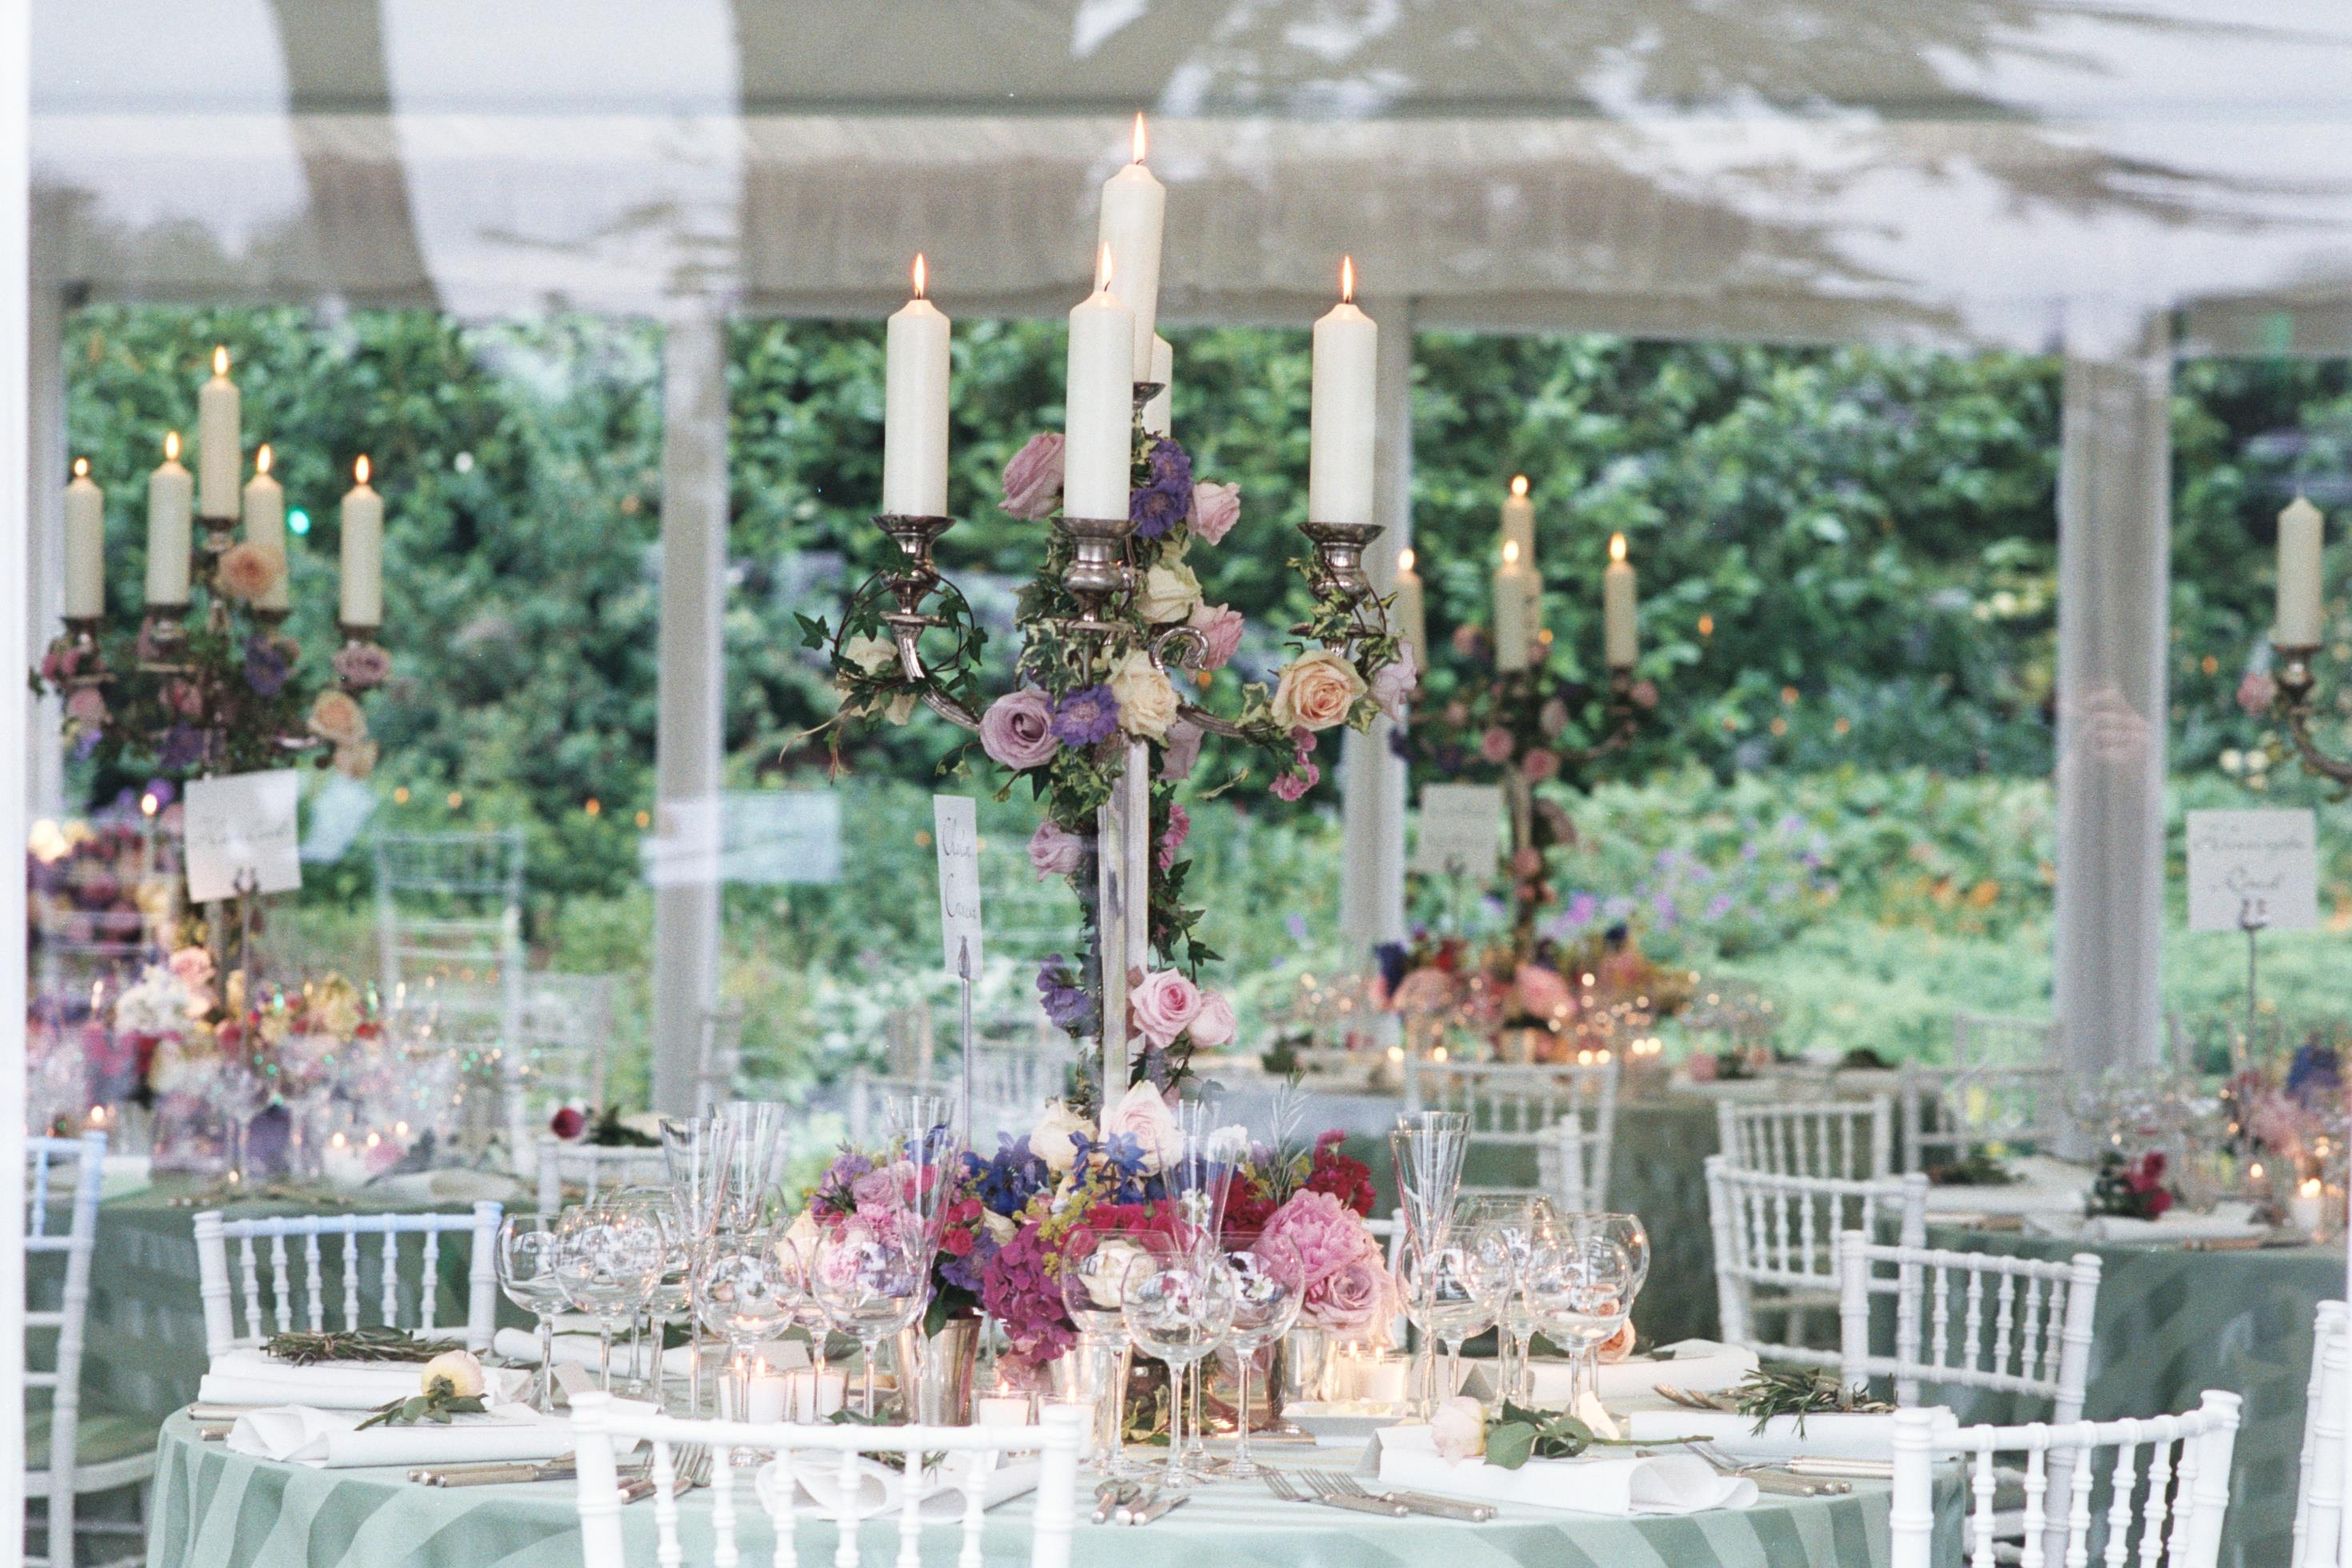 Party Planning candles and roses centrepieces